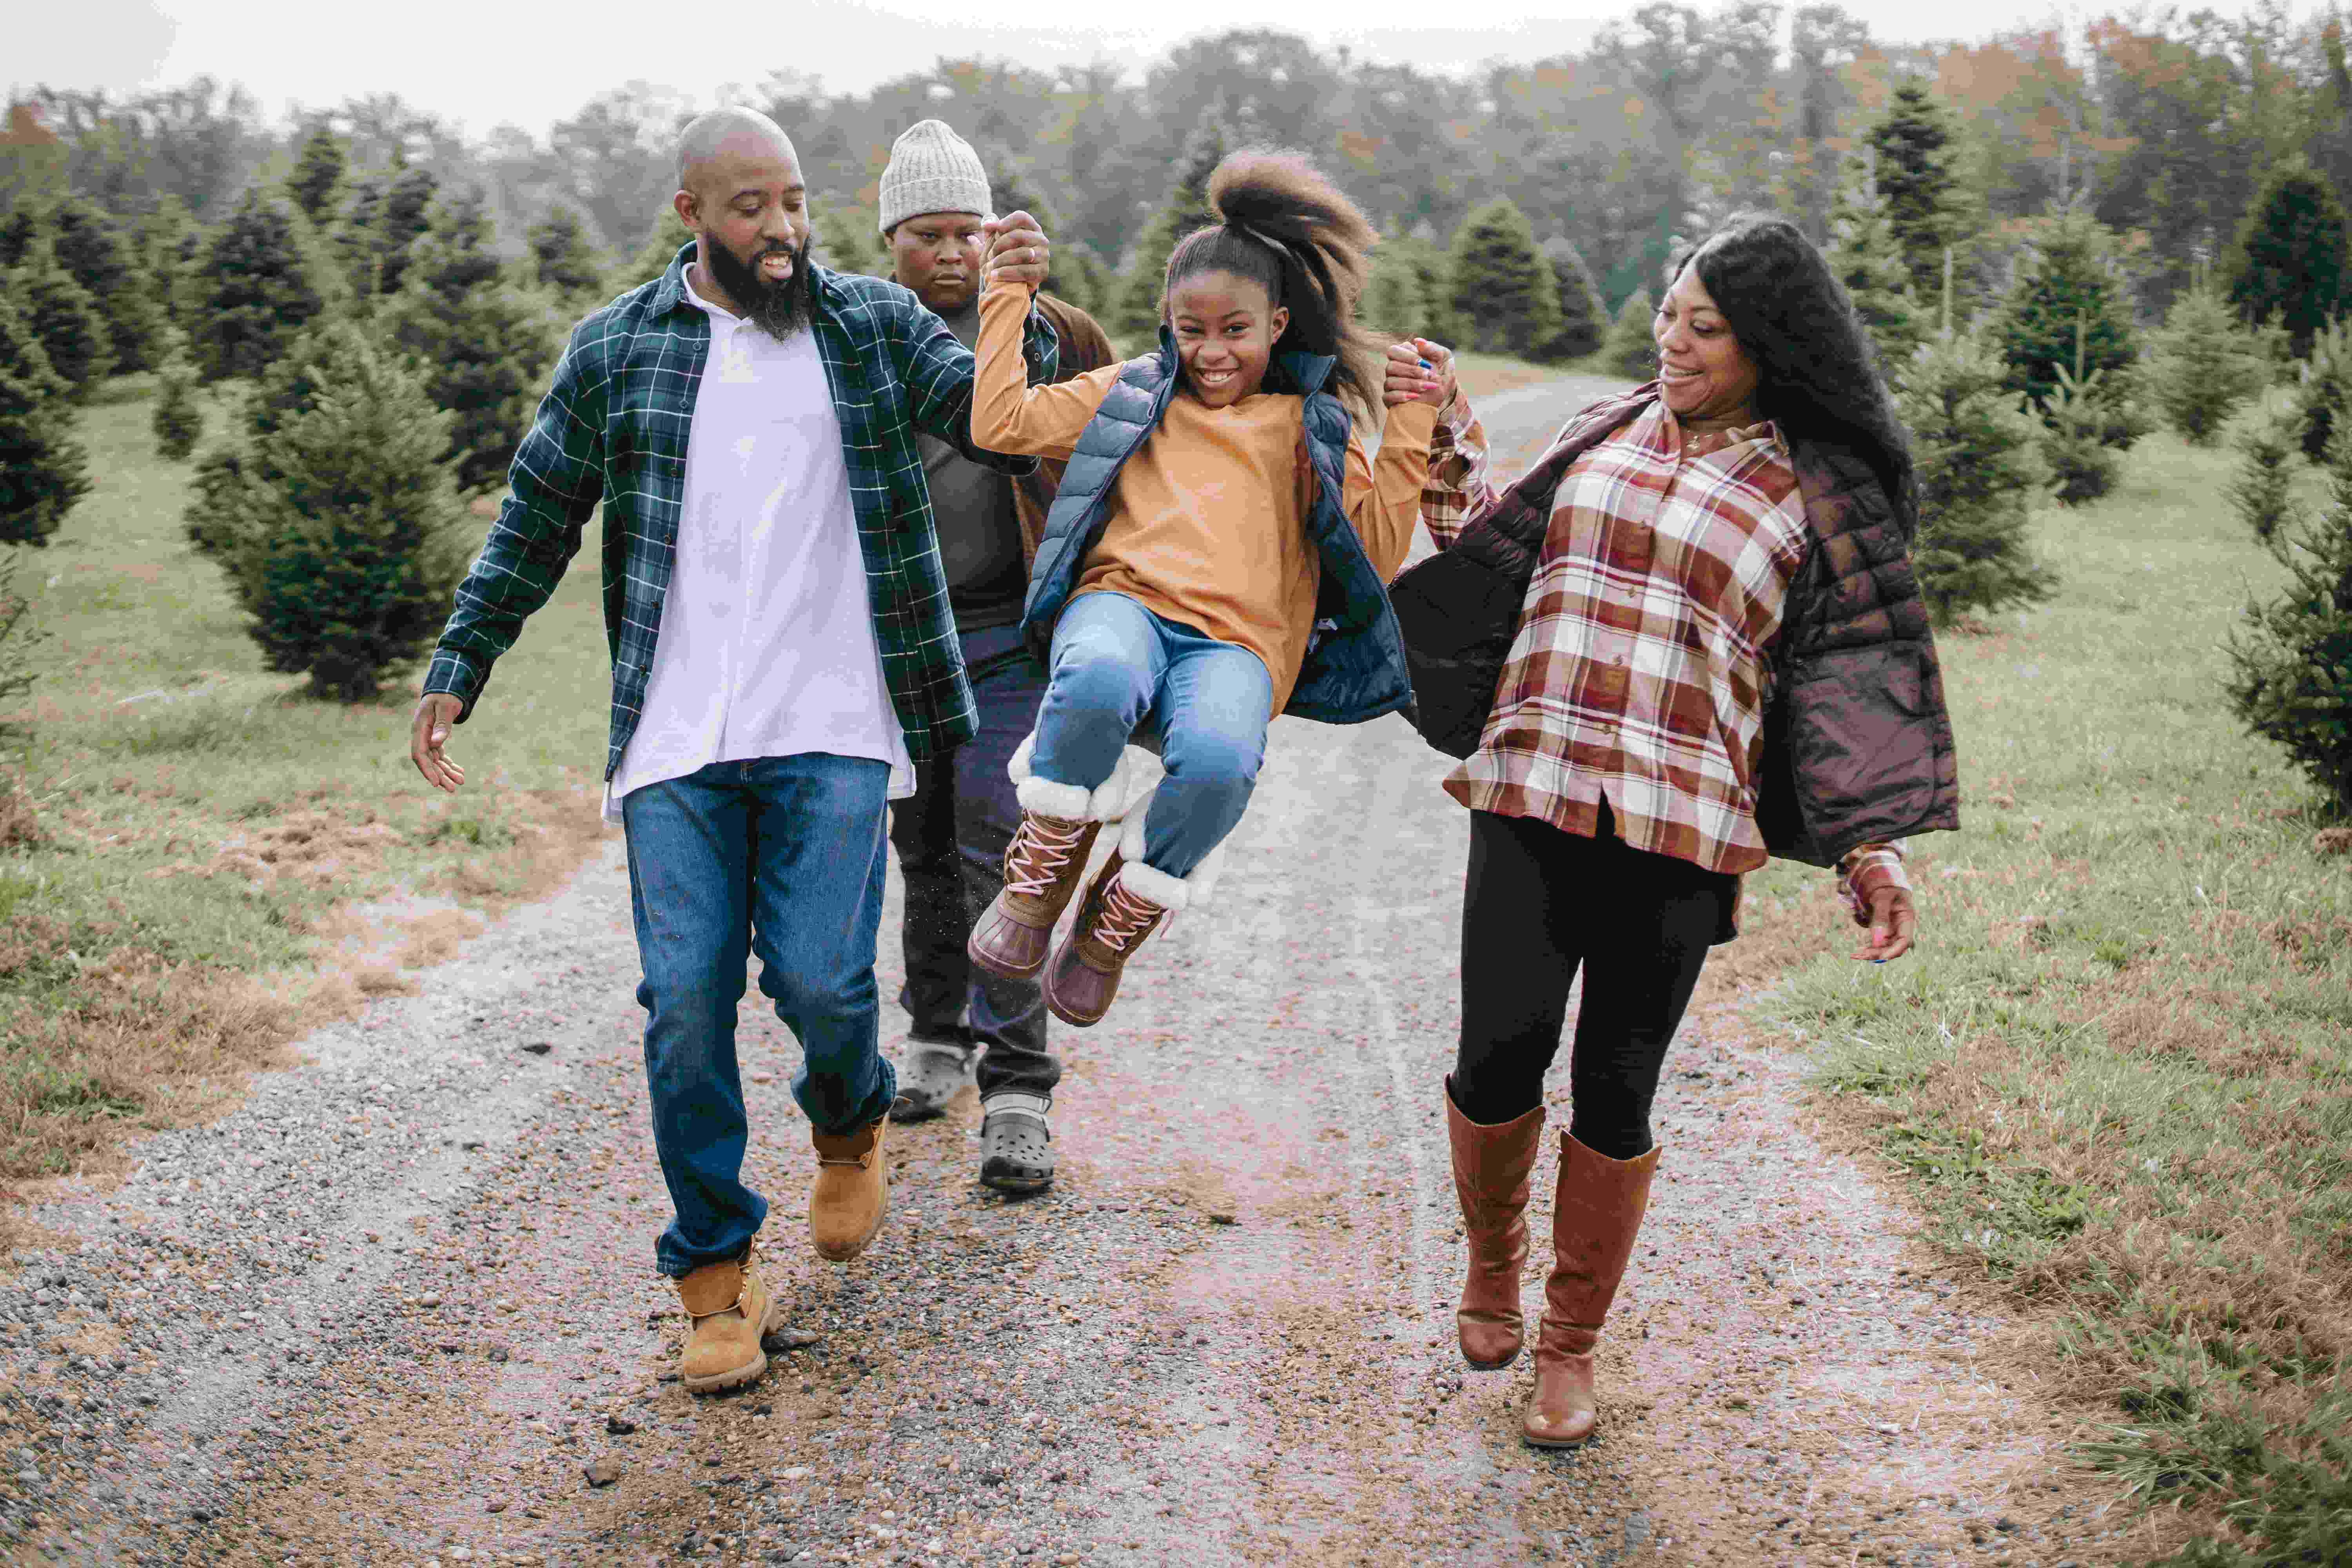 A family of 4 African-American Enjoying outside in cold weather